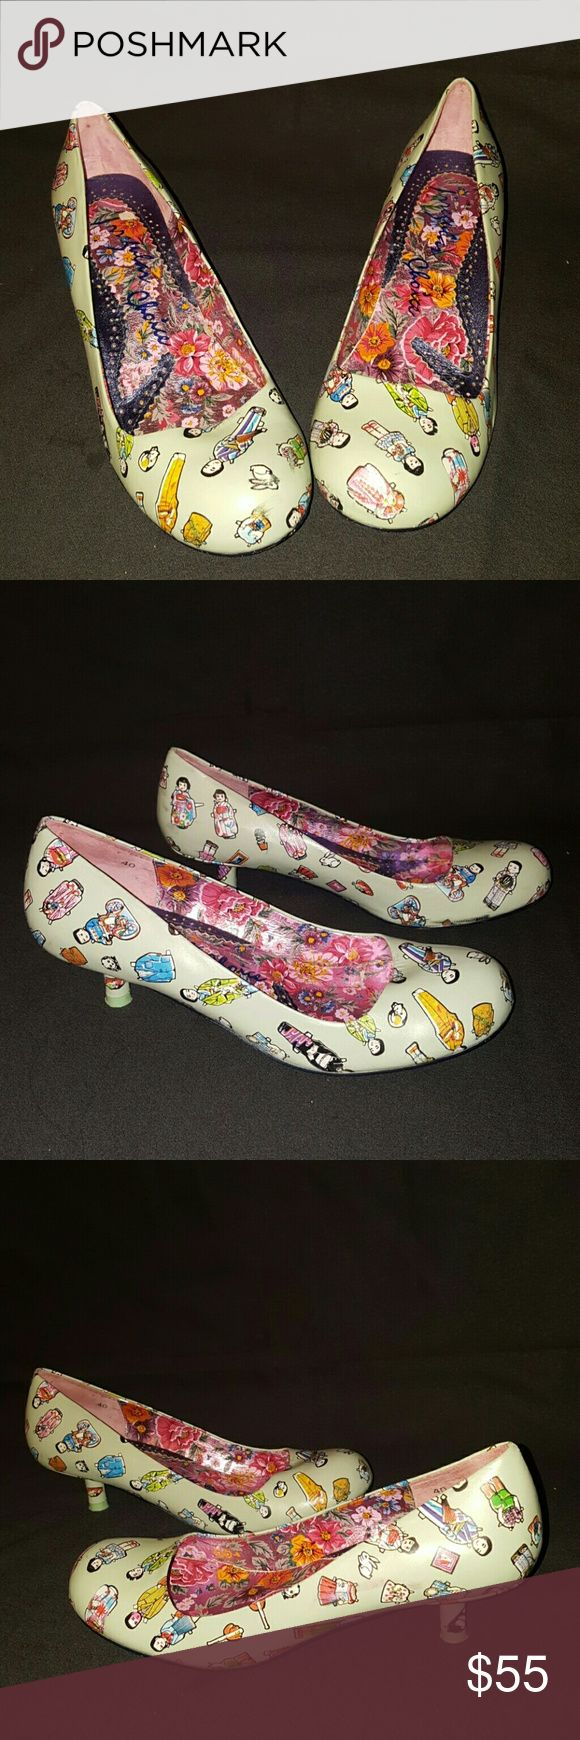 "Irregular Choice Light Blue Heel Pumps Paper Doll Up for offers is a very fun pair of Irregular Choice Light Blue Heel Pumps Paper Doll Geisha Women's Euro size 40  These pumps are in great pre- owned condition with minimal signs of wear in and out. There are a few slight scuffs and scratches on upper. Please see all photos for more details and condition .  Size: 40 USA 8.5-9) Color: Light Blue with Multi- Color Grishas Print Heel Height:1.25"" Thank you for looking! Irregular Choice  Shoes…"